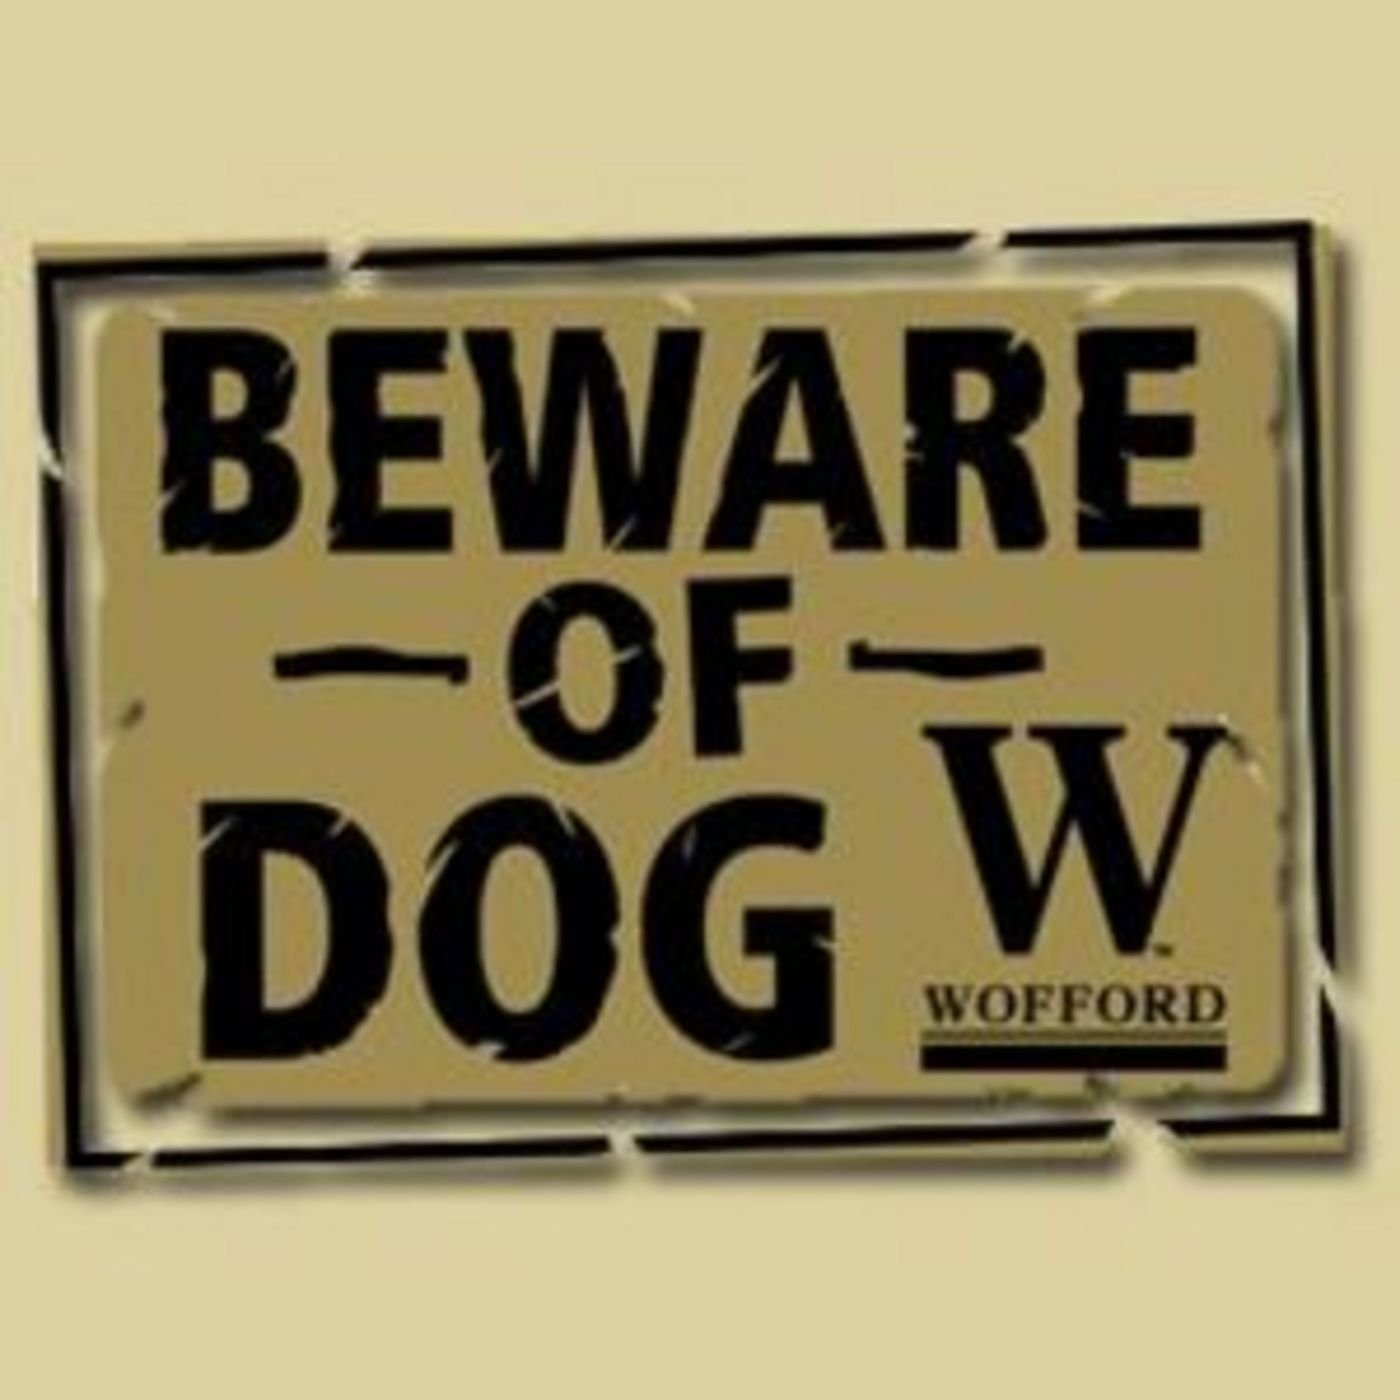 <![CDATA[Wofford College Terrier Report]]>